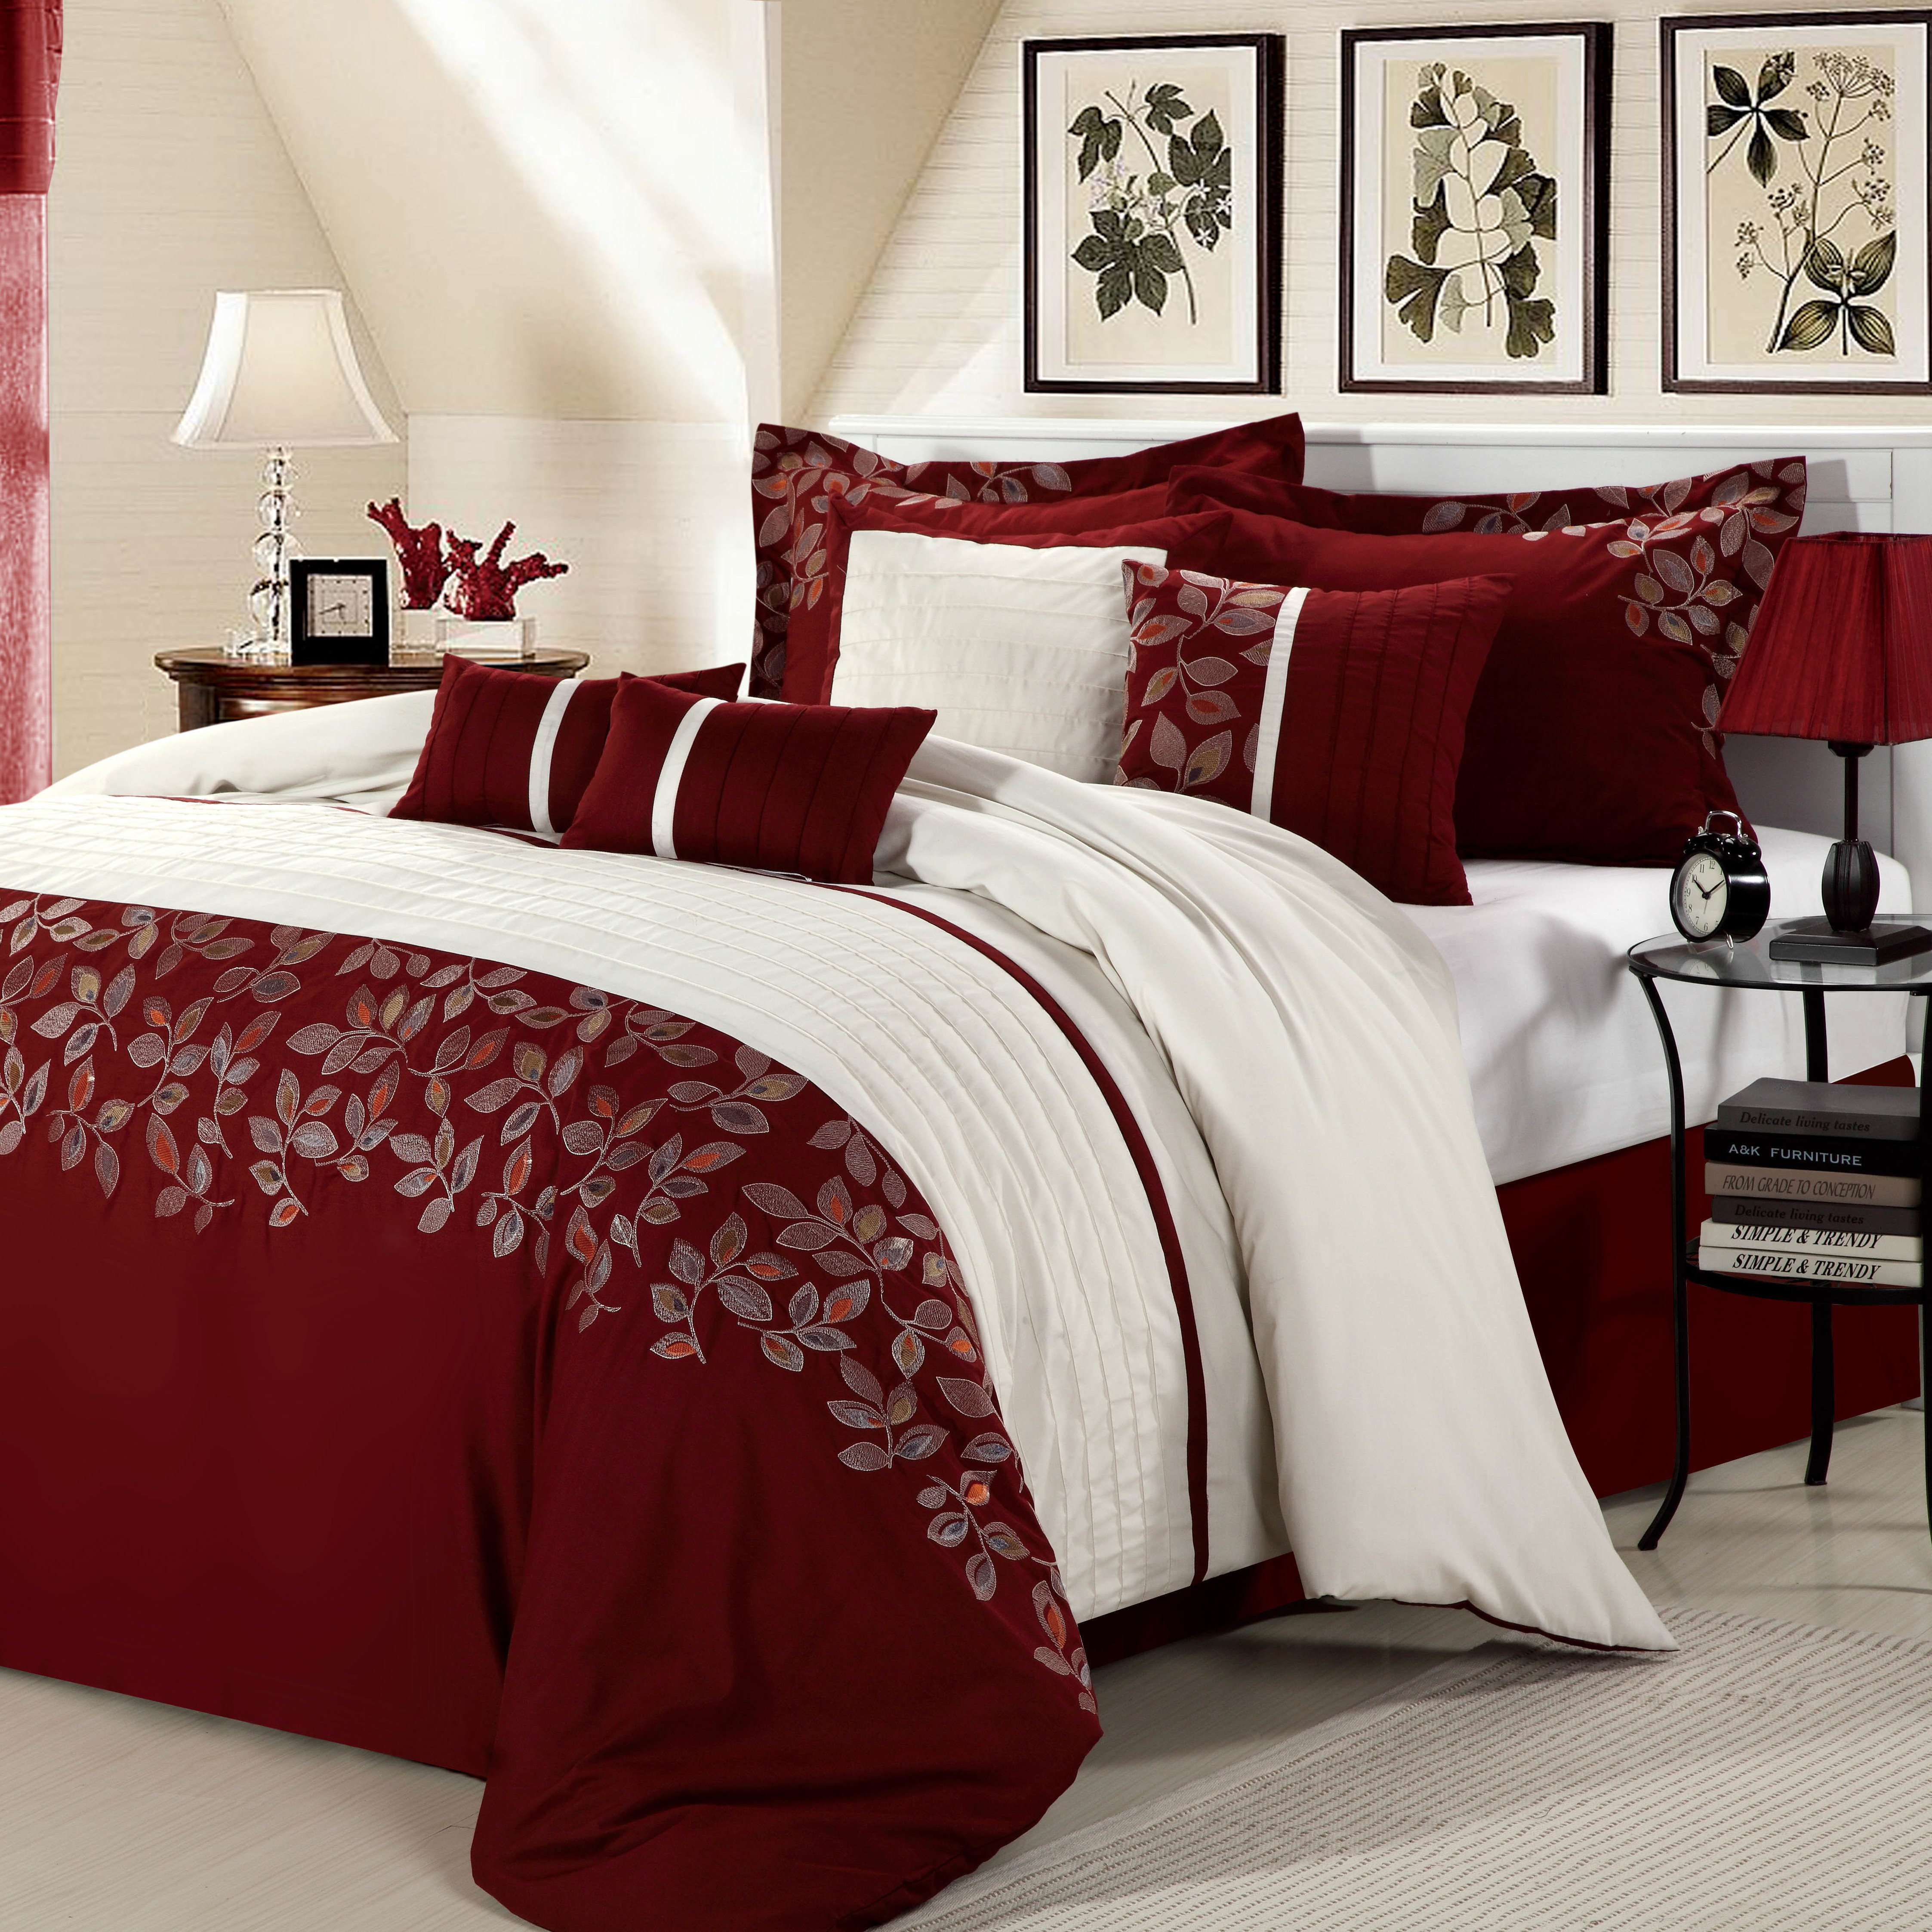 Best ideas about Wayfair Bedroom Sets . Save or Pin Chic Home Montana 8 Piece forter Set & Reviews Now.